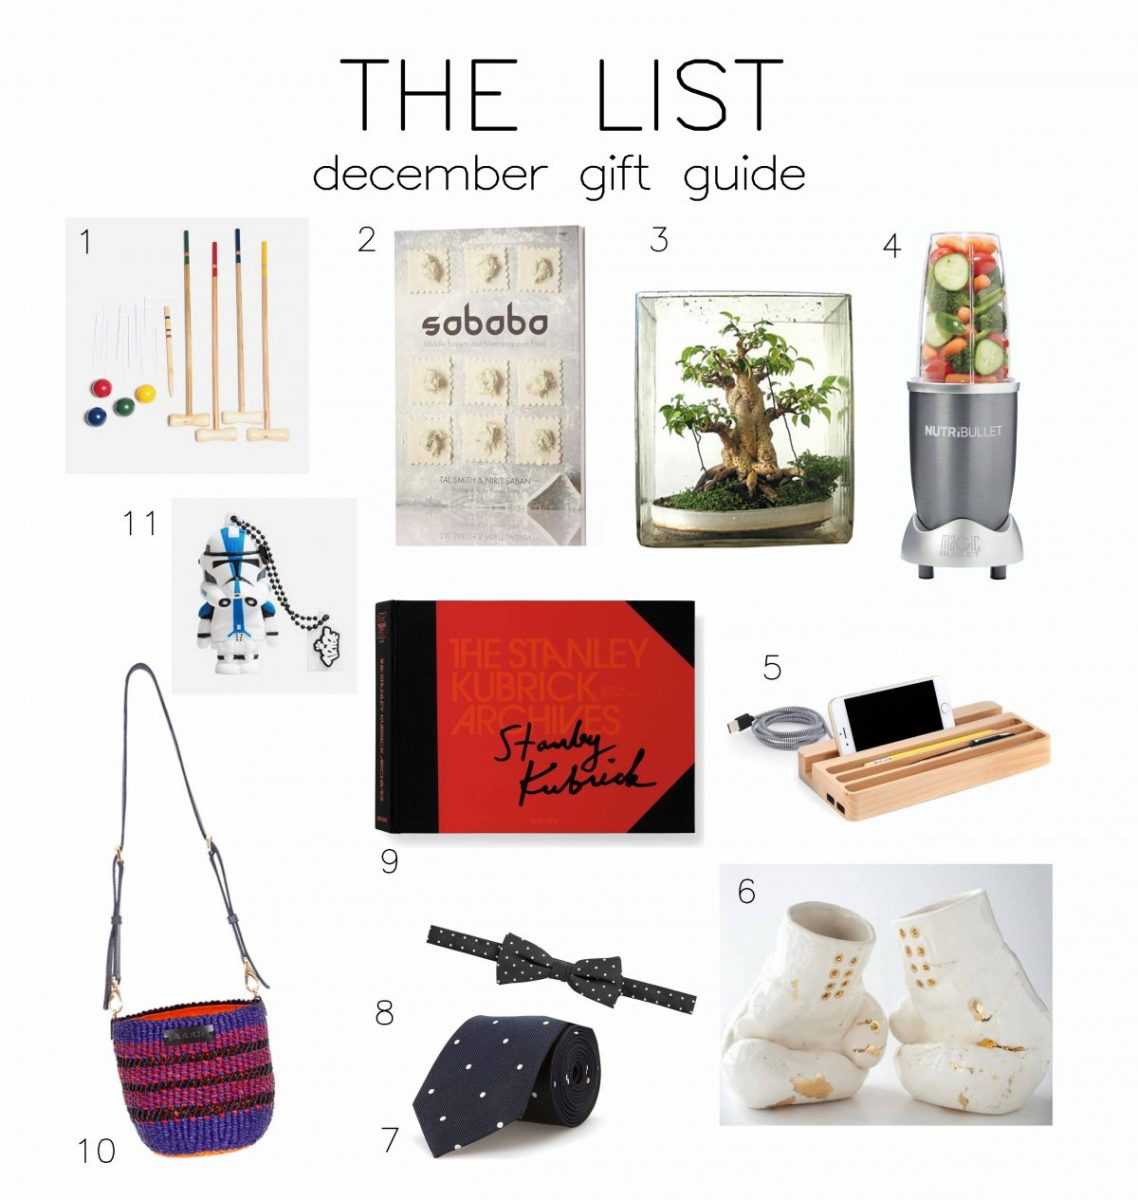 THE LIST – December Gift Guide!